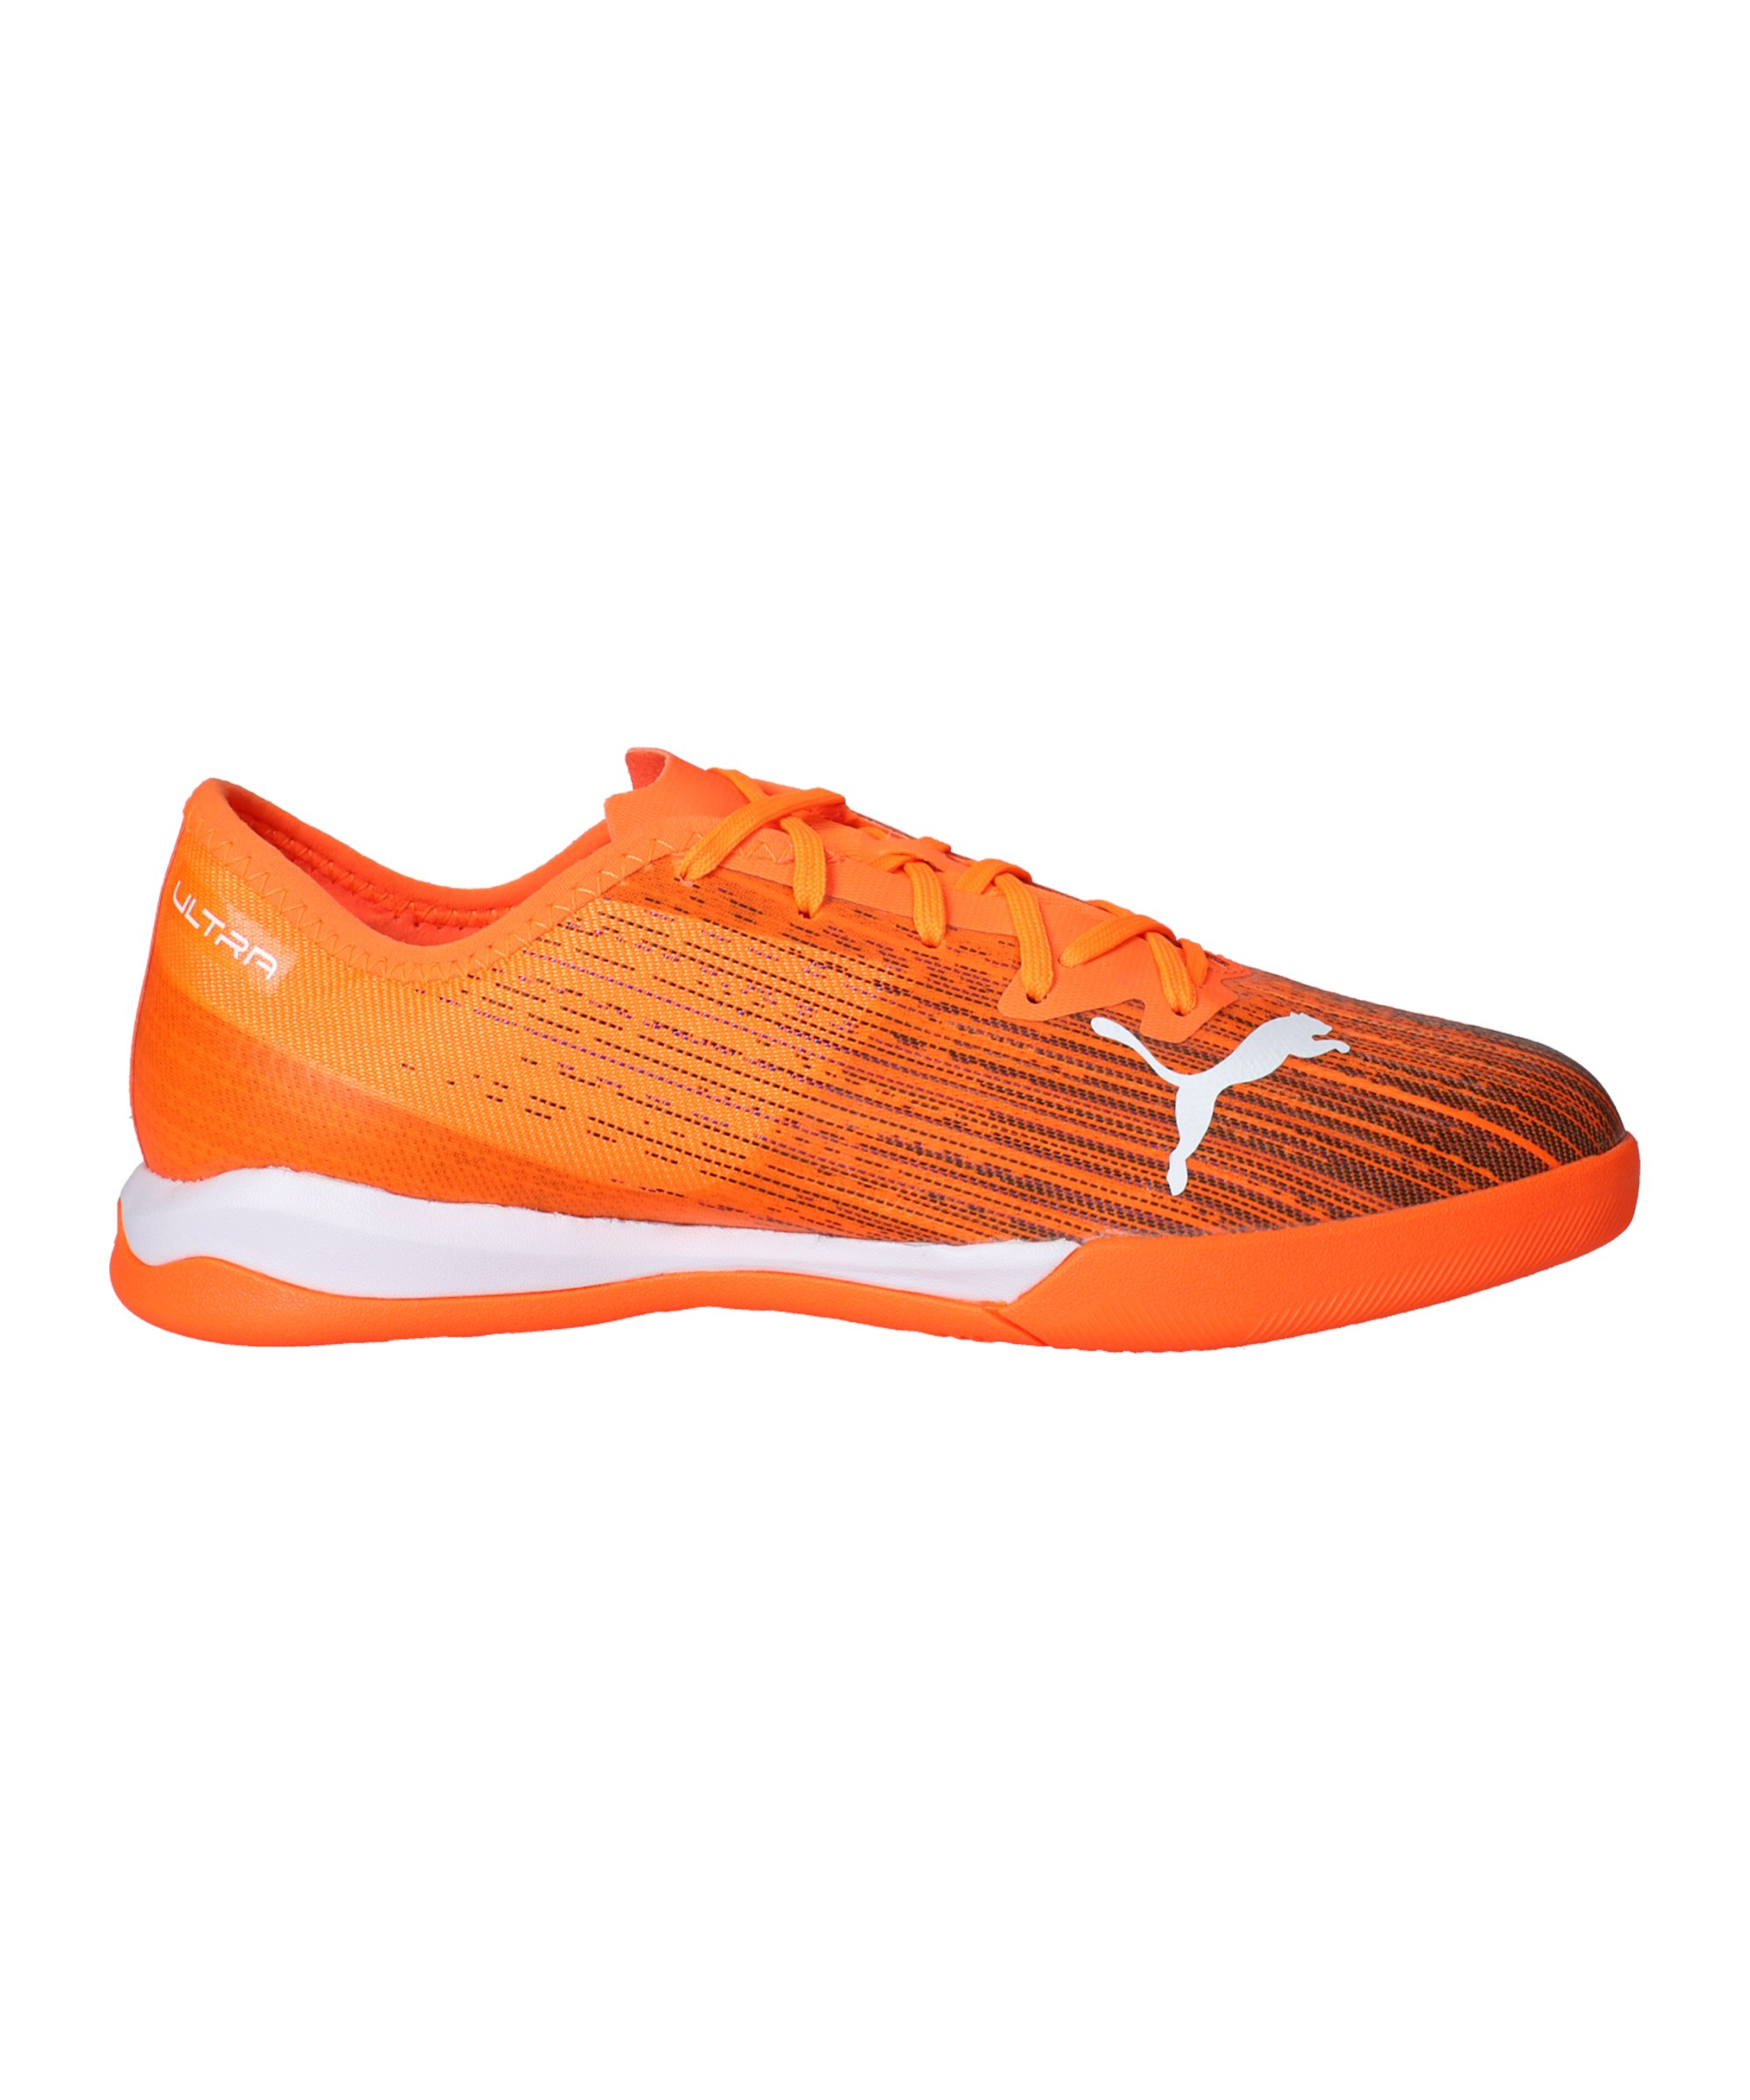 PUMA ULTRA Chasing Adrenaline 2.1 IT Halle Orange F01 - orange